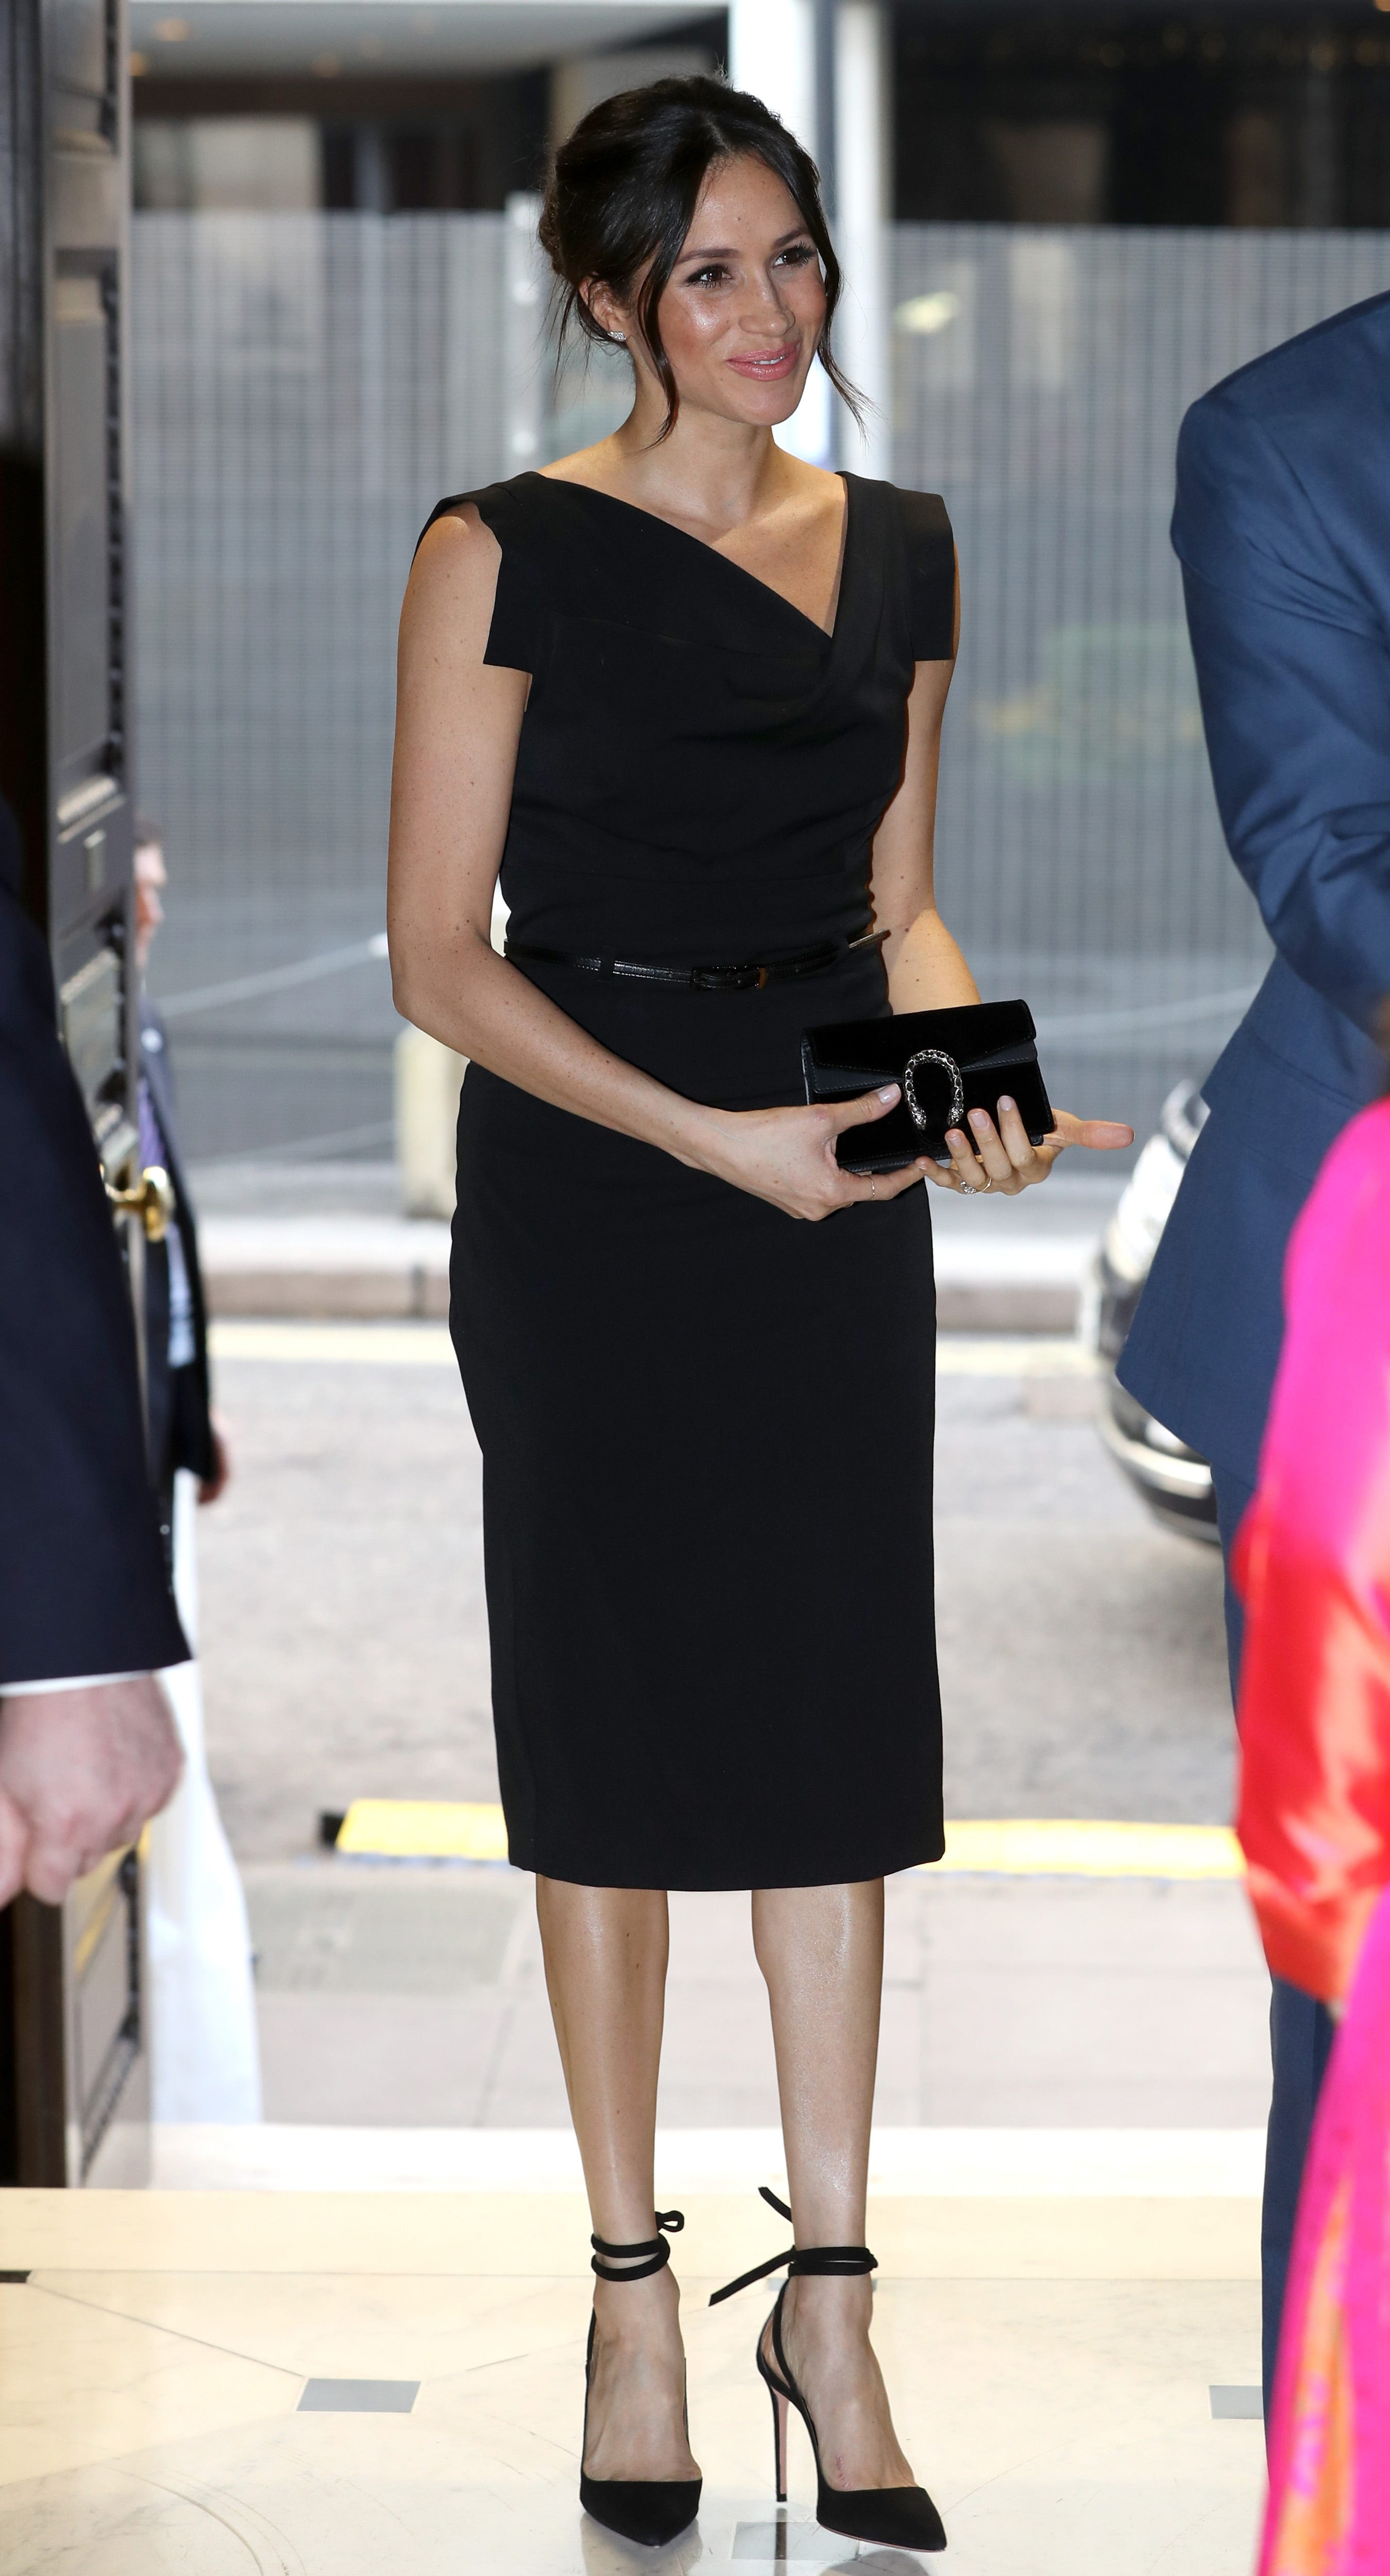 Meghan Markle looks sleek (and breaks royal protocol) in all black with a Gucci clutch